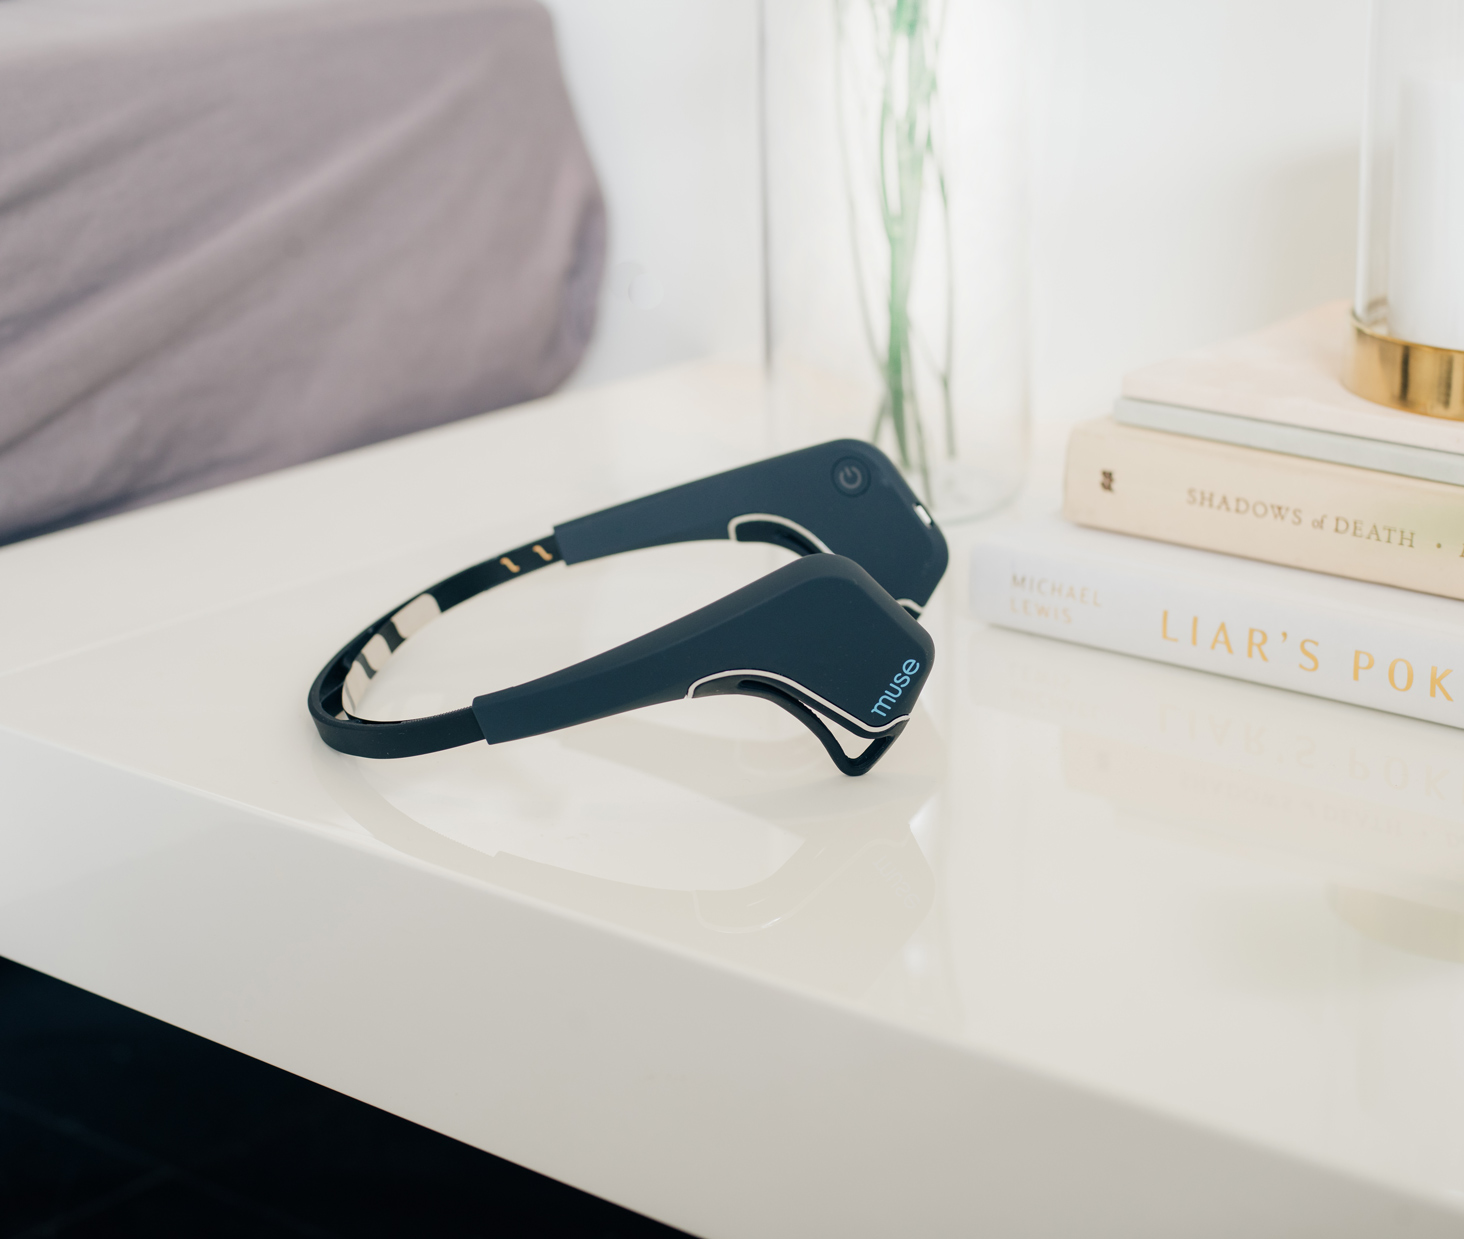 7679353474bc9 Muse™ - Meditation Made Easy with the Muse Headband